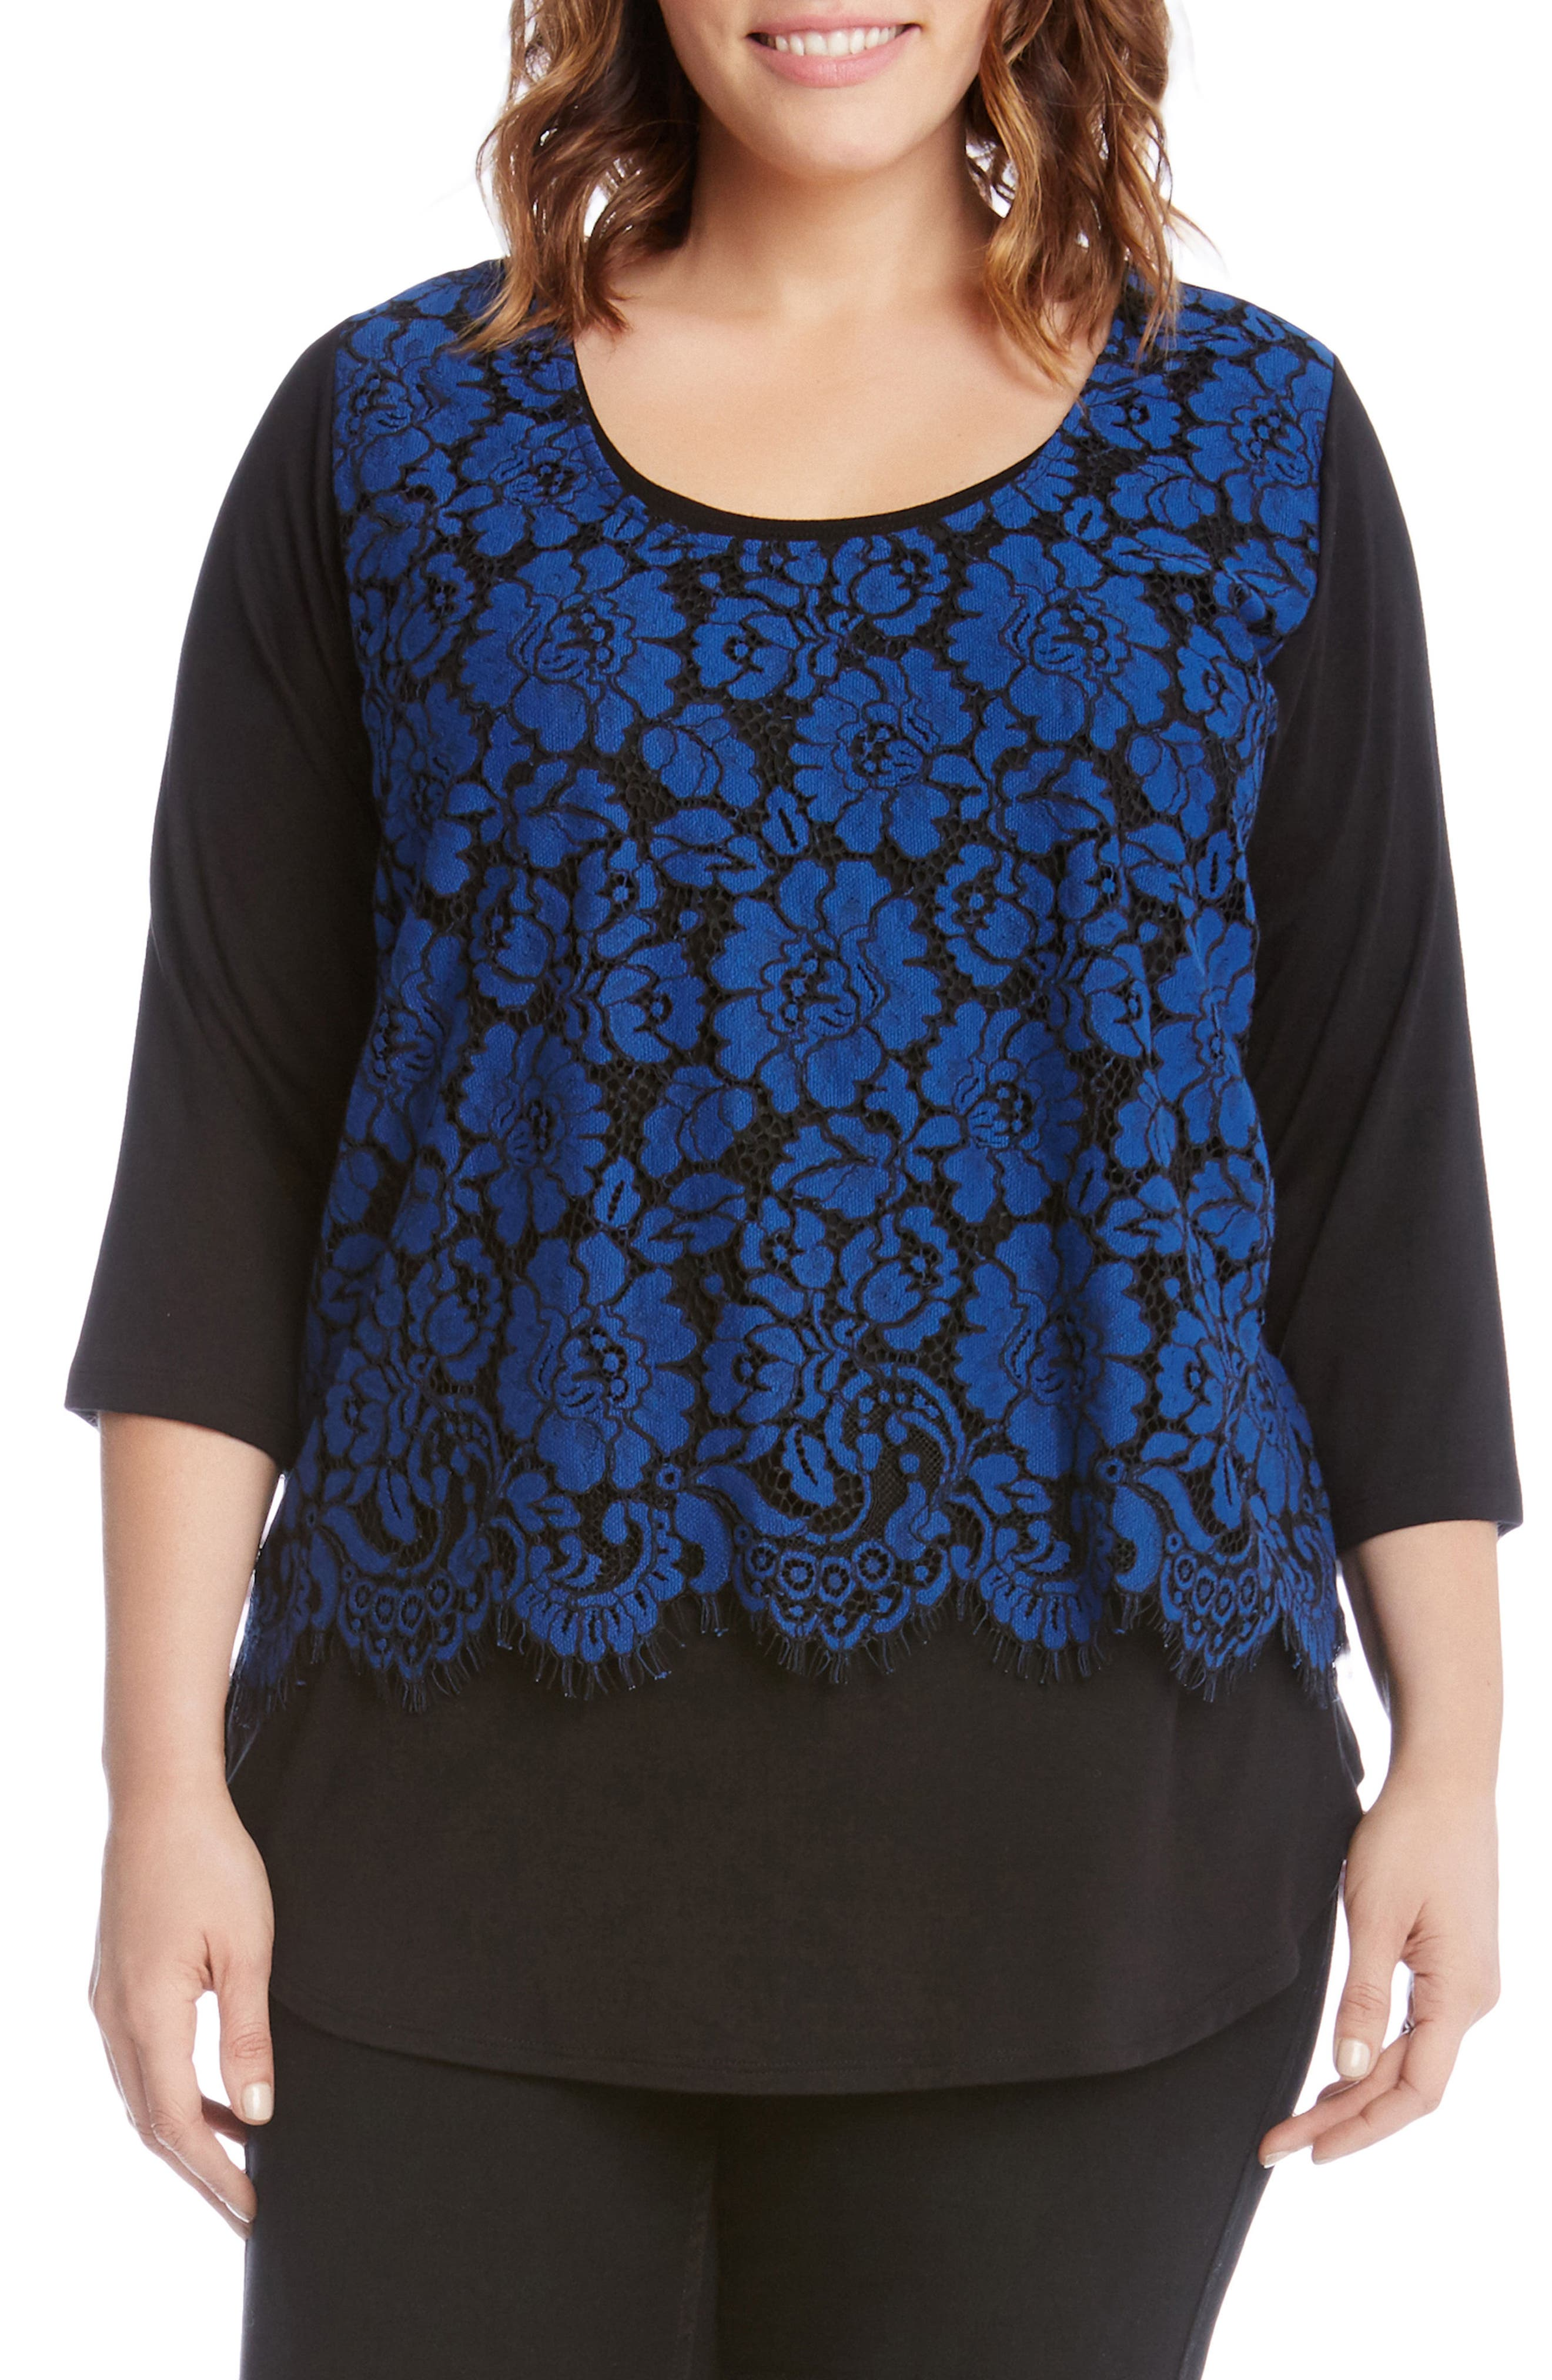 Lace Overlay Top,                         Main,                         color, Black With Blue